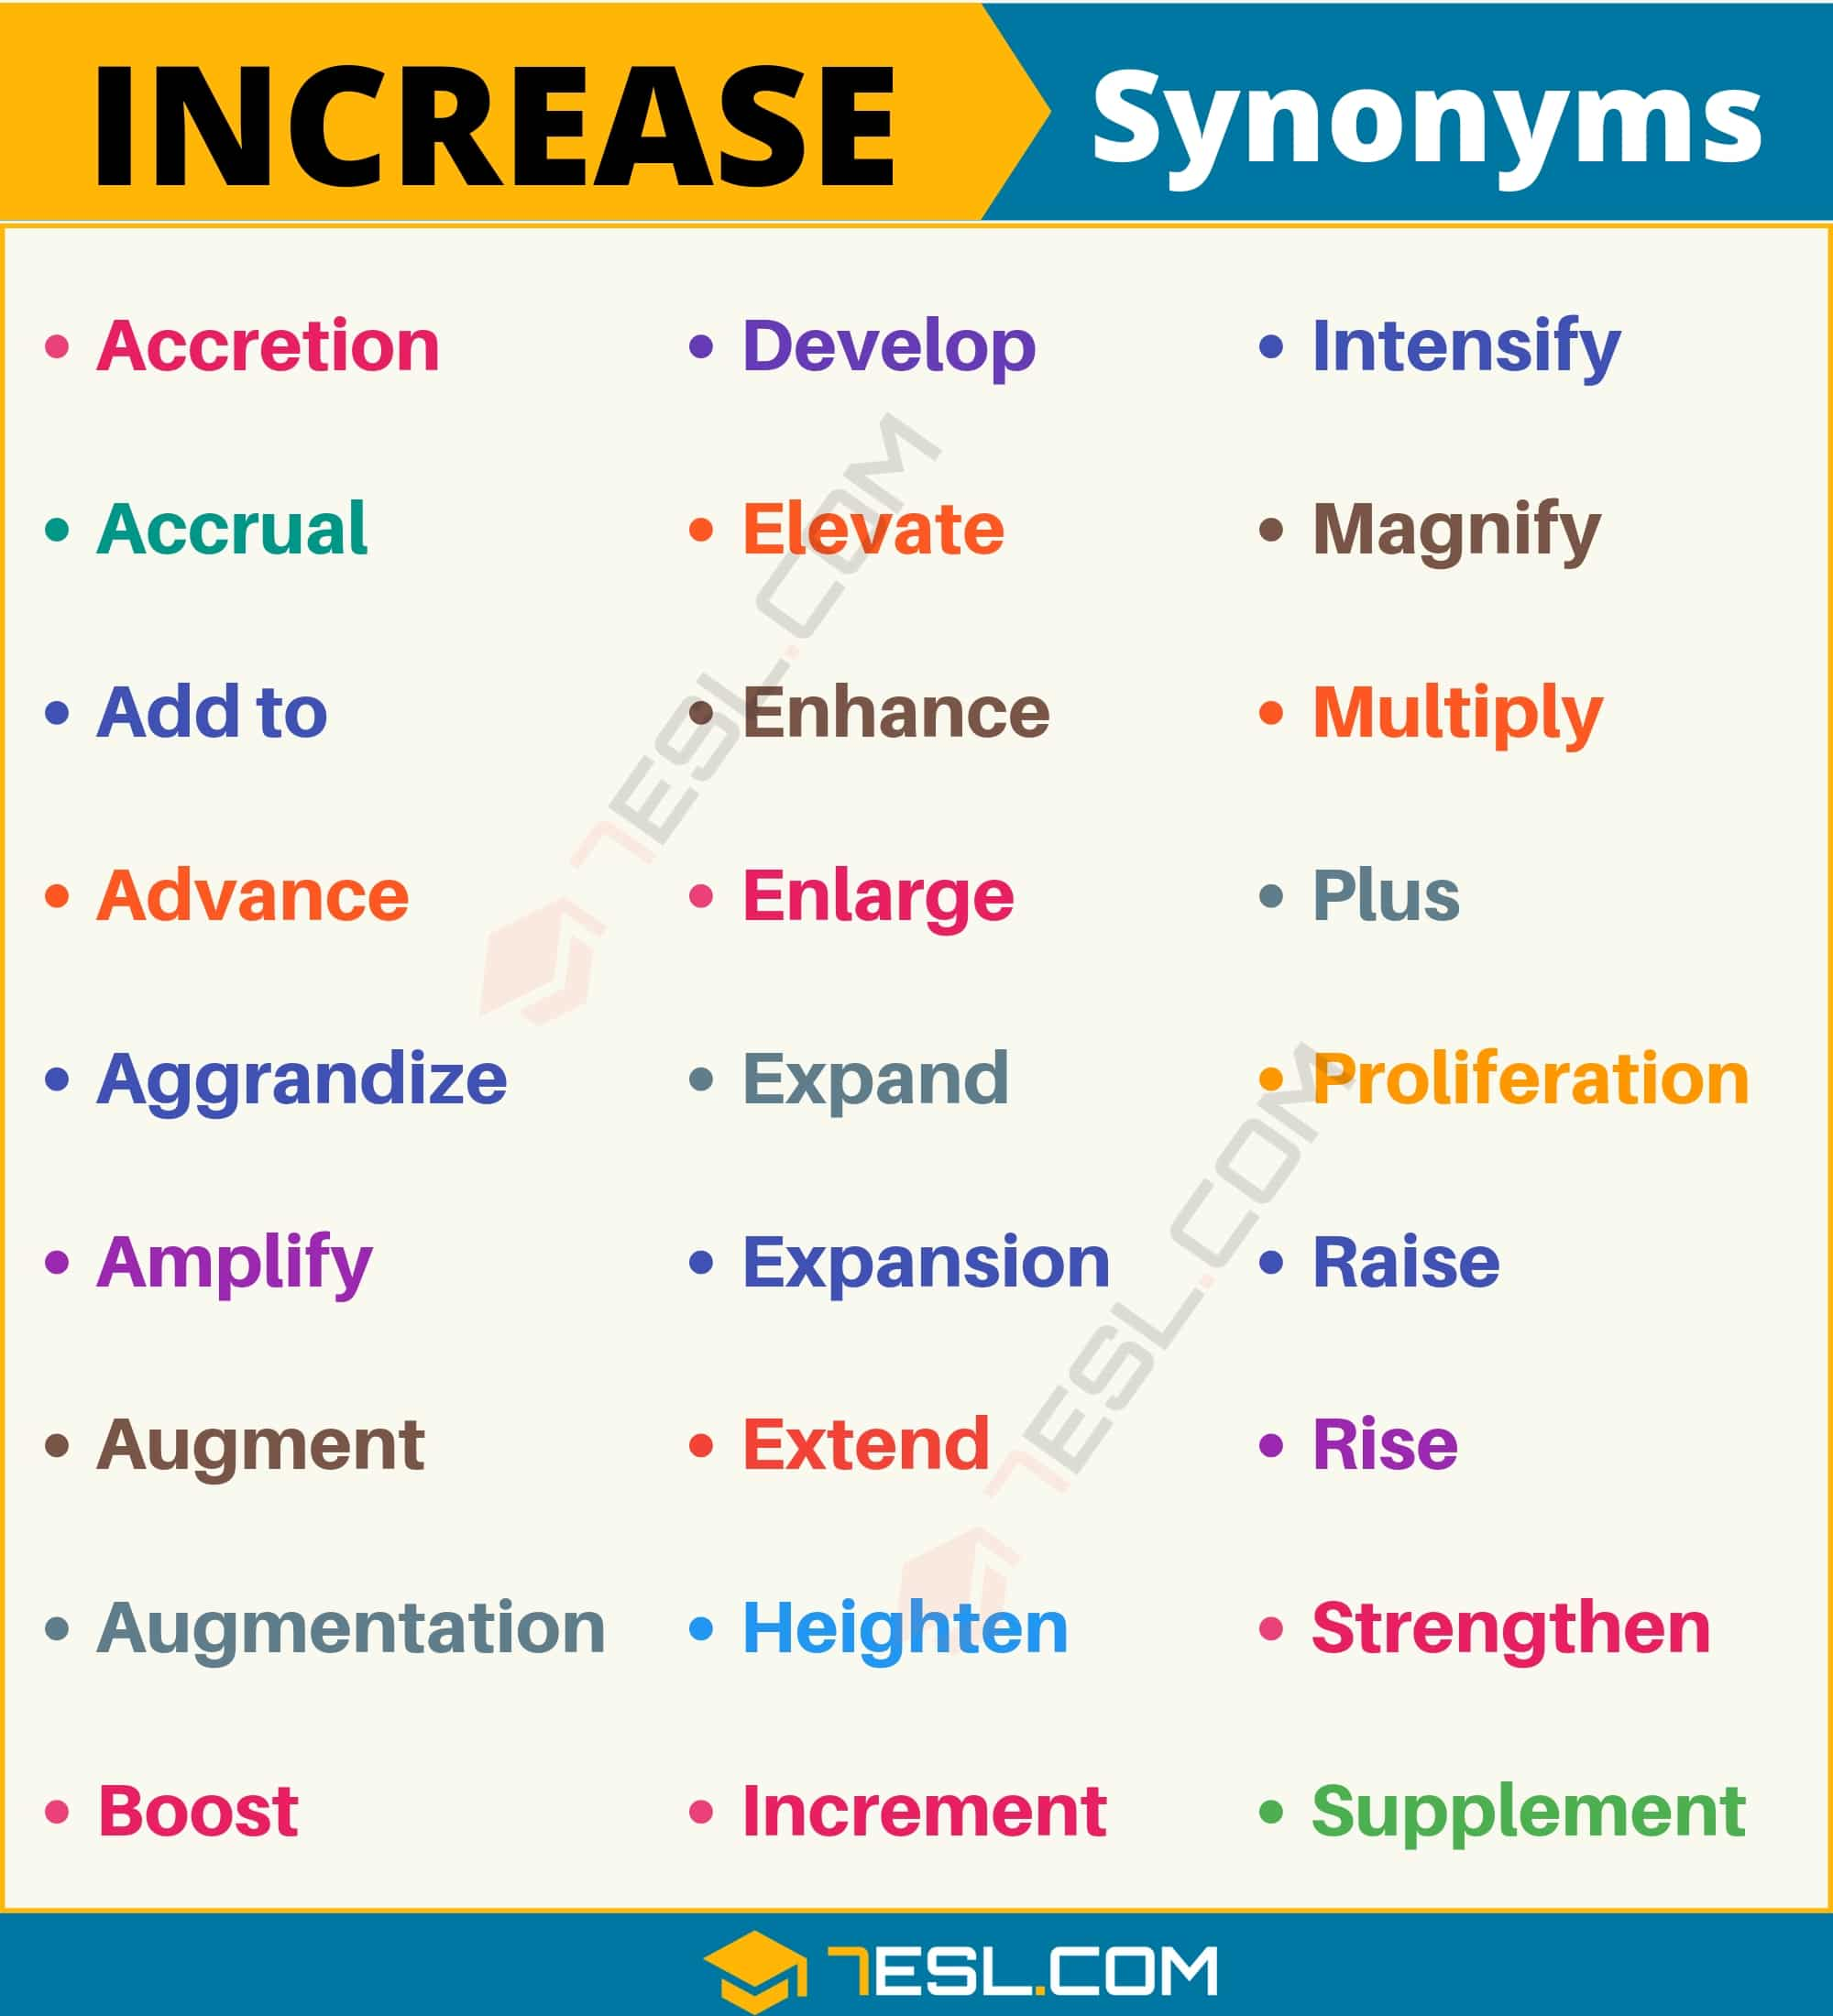 INCREASE Synonym: List of 27 Synonyms for Increase in English